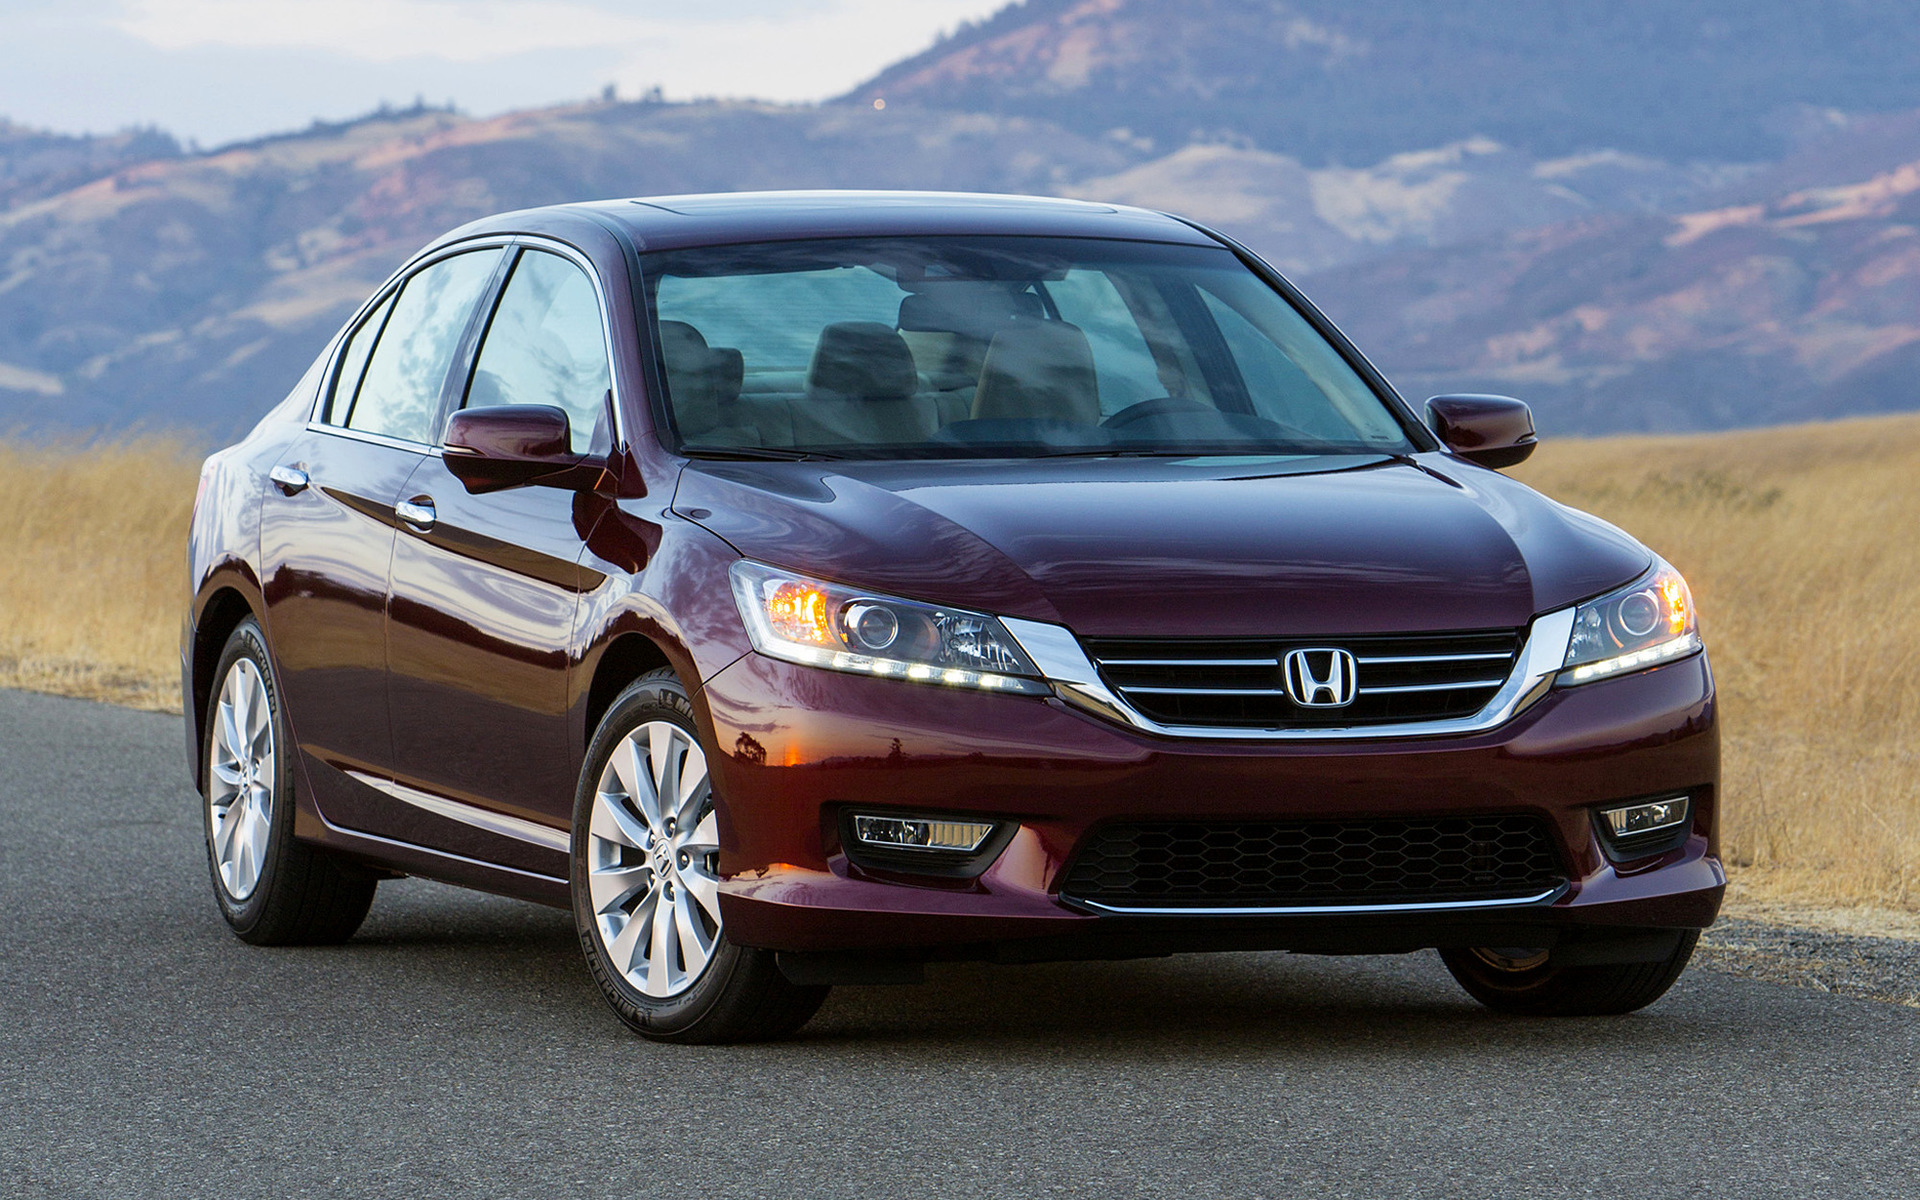 Honda Accord Ex L V6 Sedan 2012 Wallpapers And Hd Images